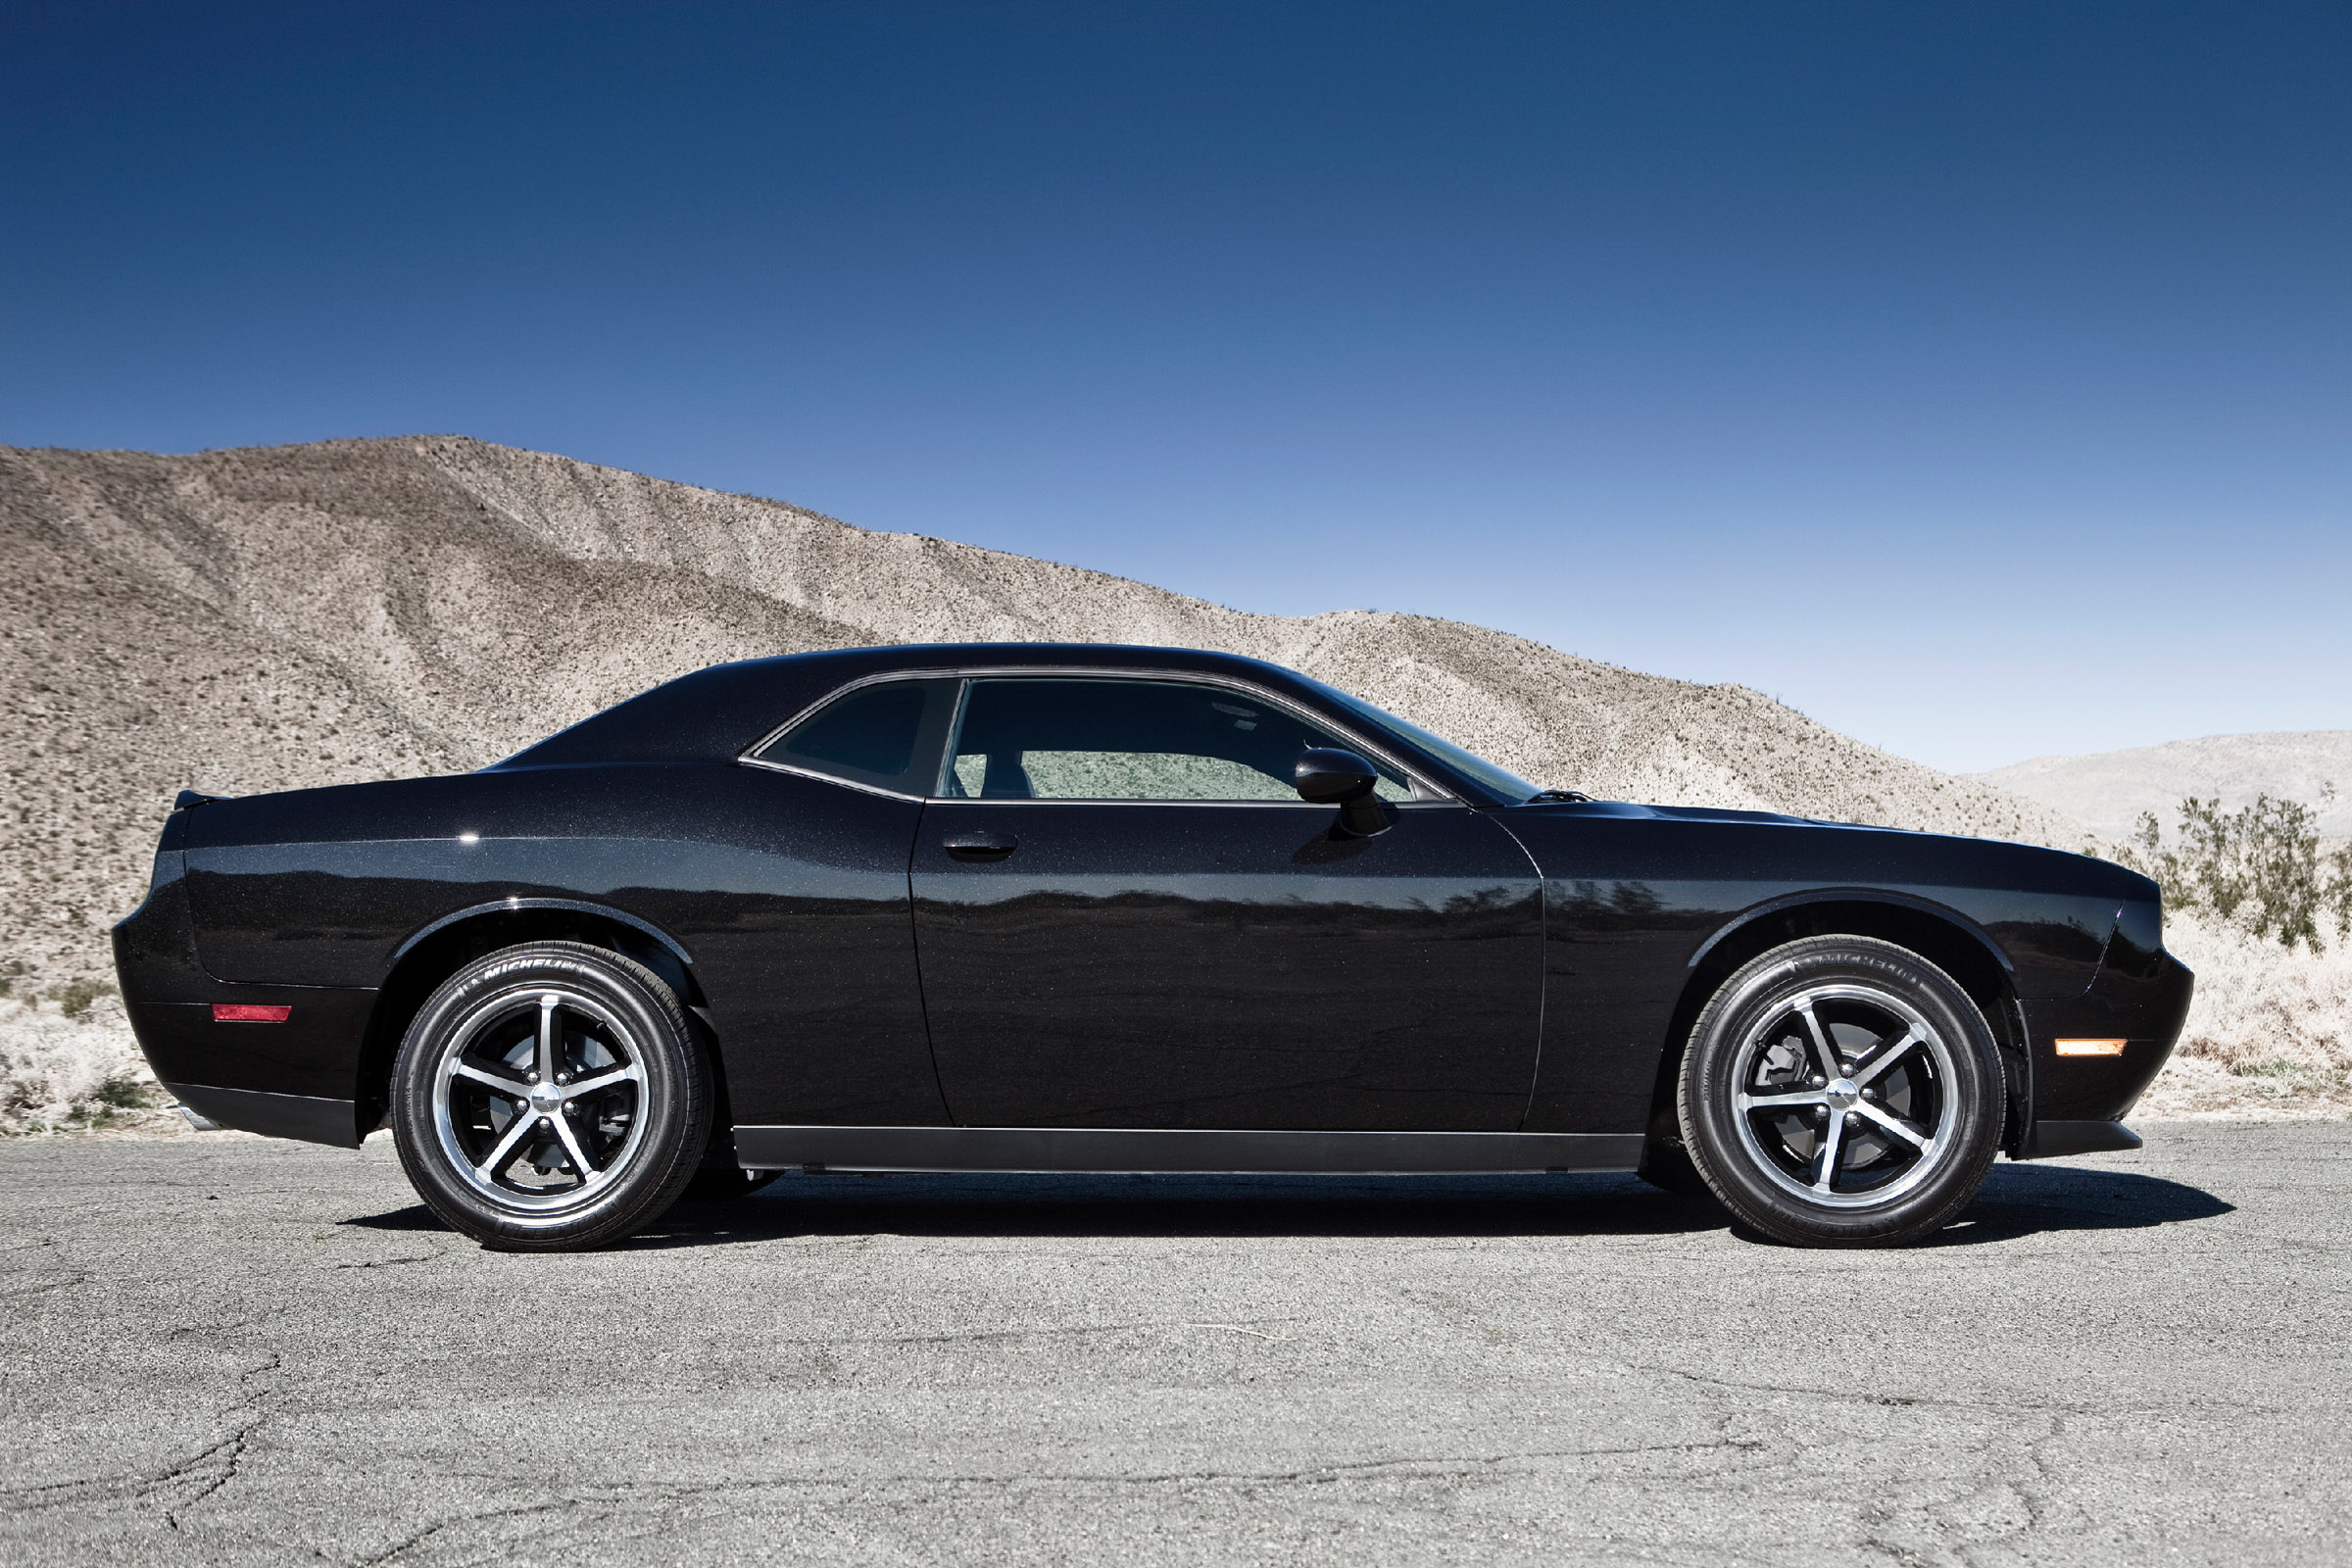 Audi Concept Car Wallpaper 2011 Dodge Challenger Rt Picture 59789